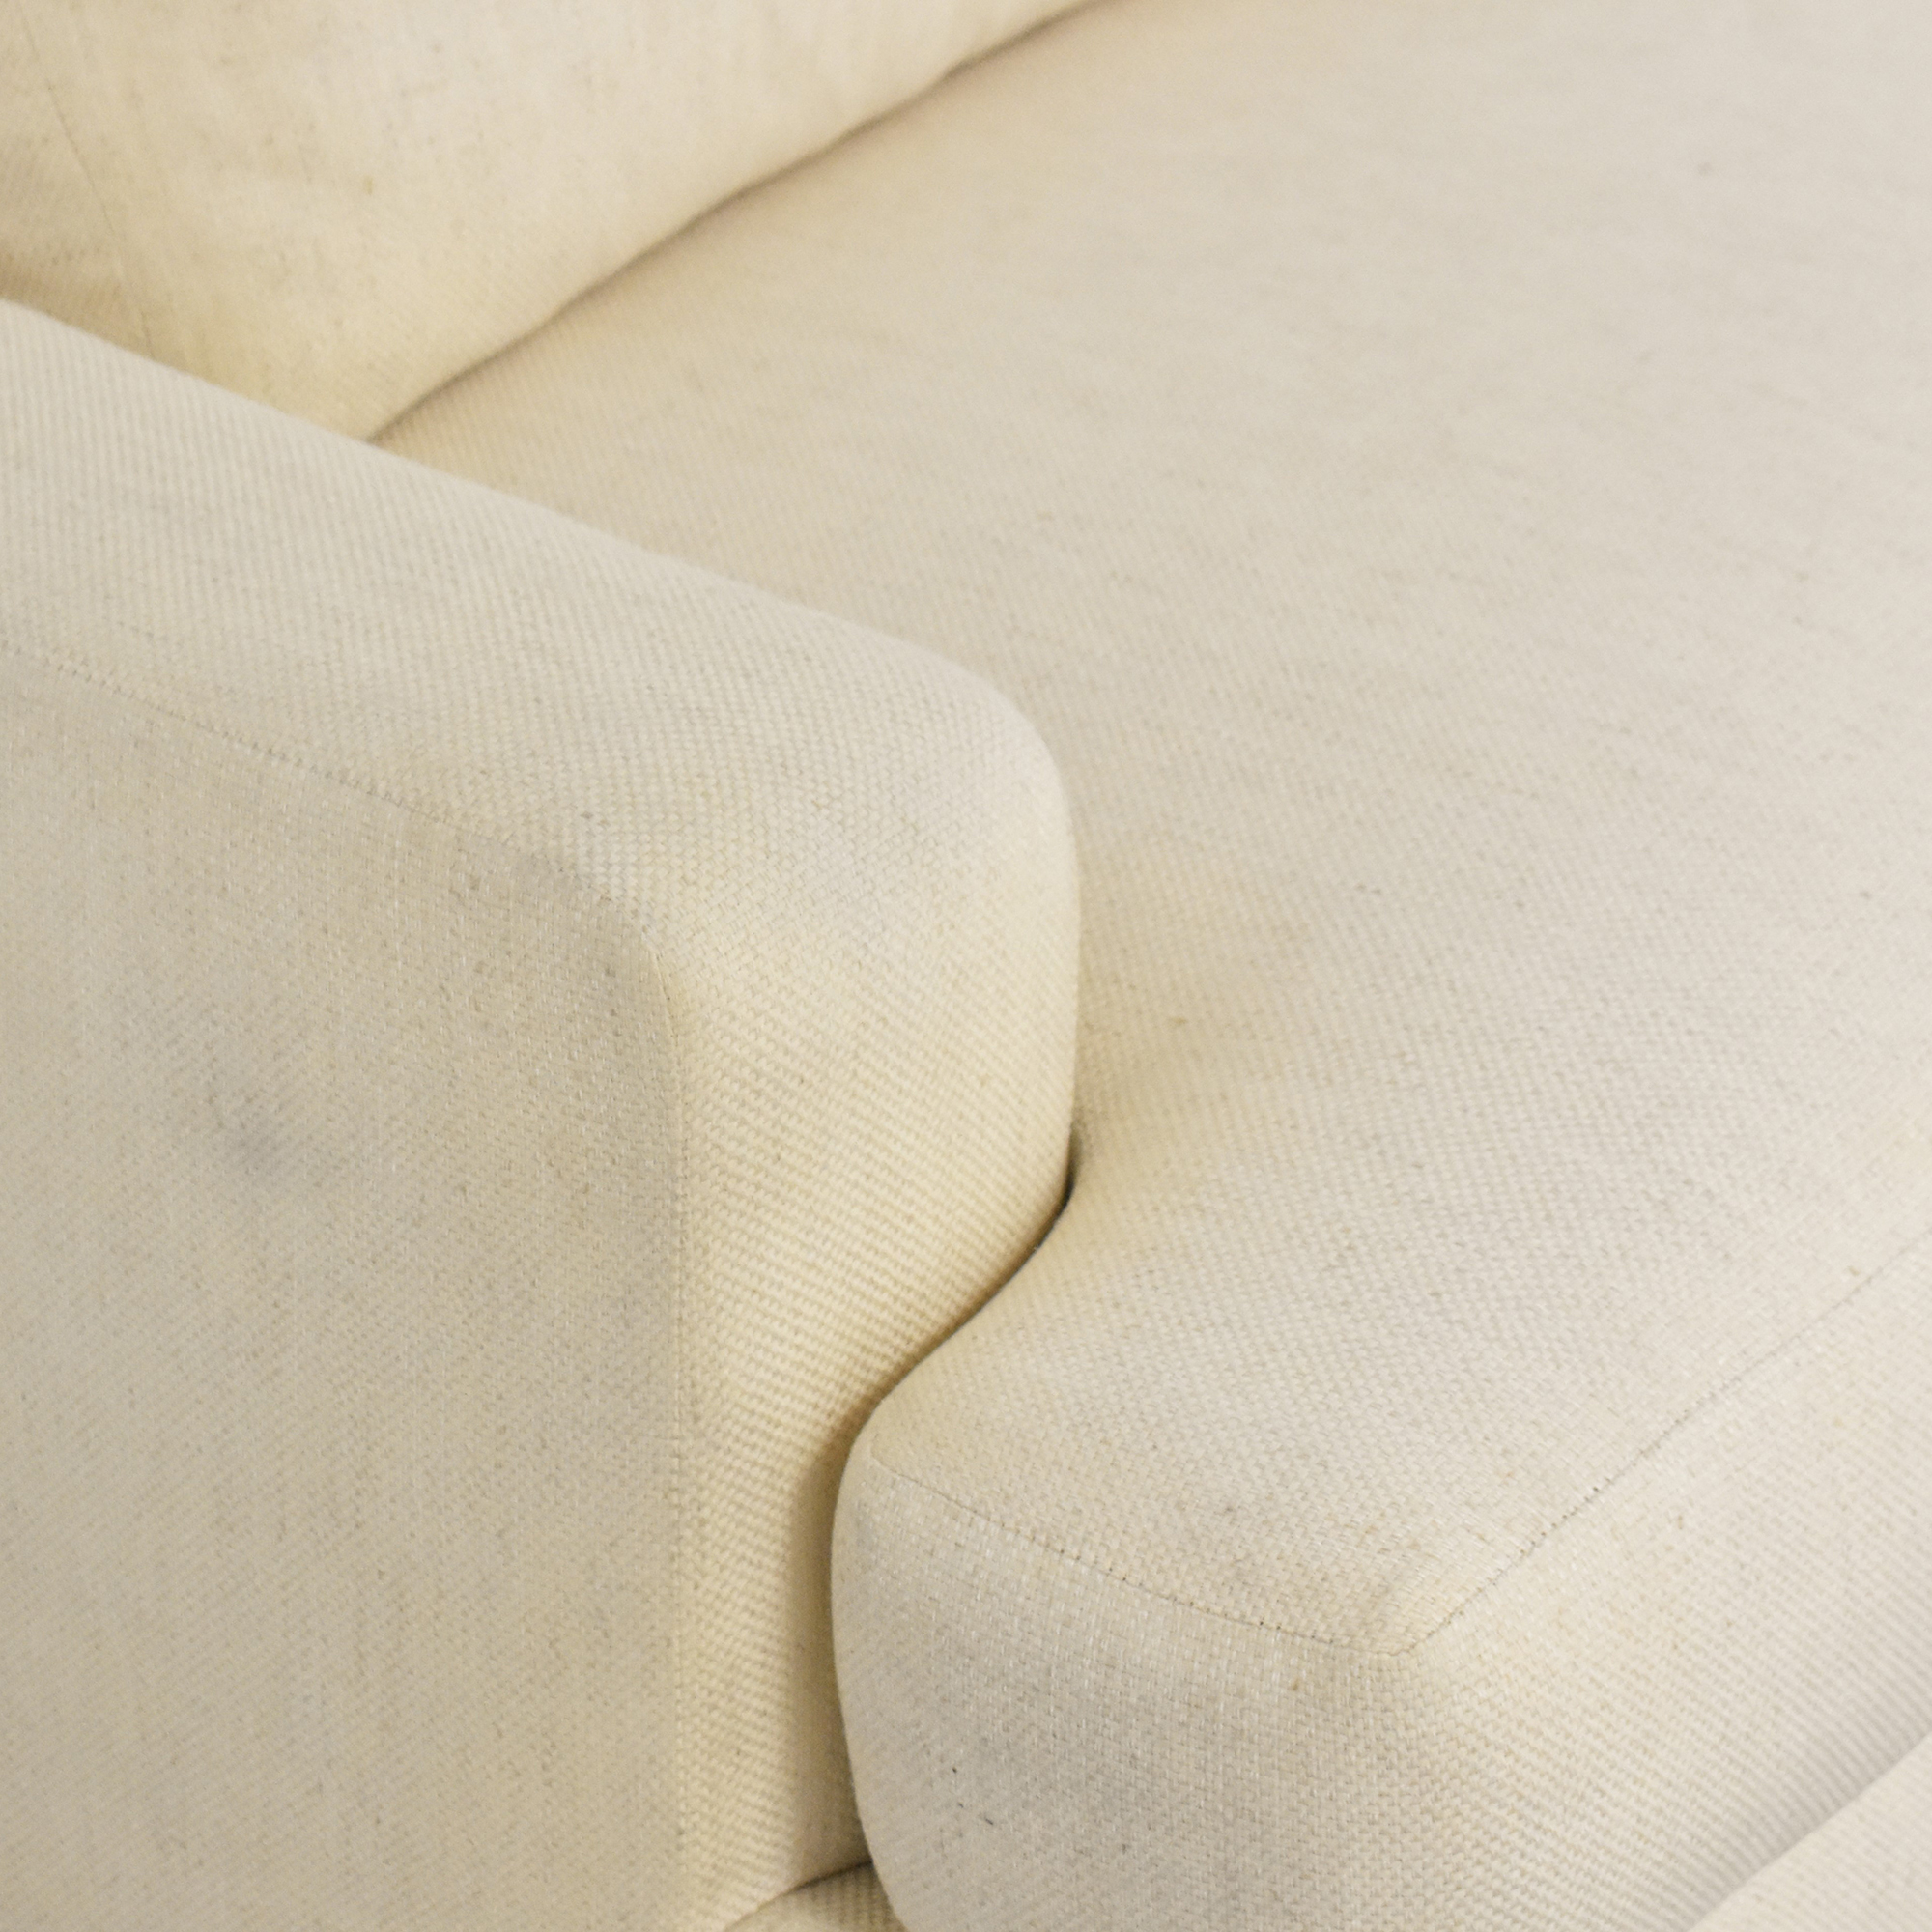 shop Bloomingdale's Bloomingdale's by Barbara Barry Oval Collection Sofa online